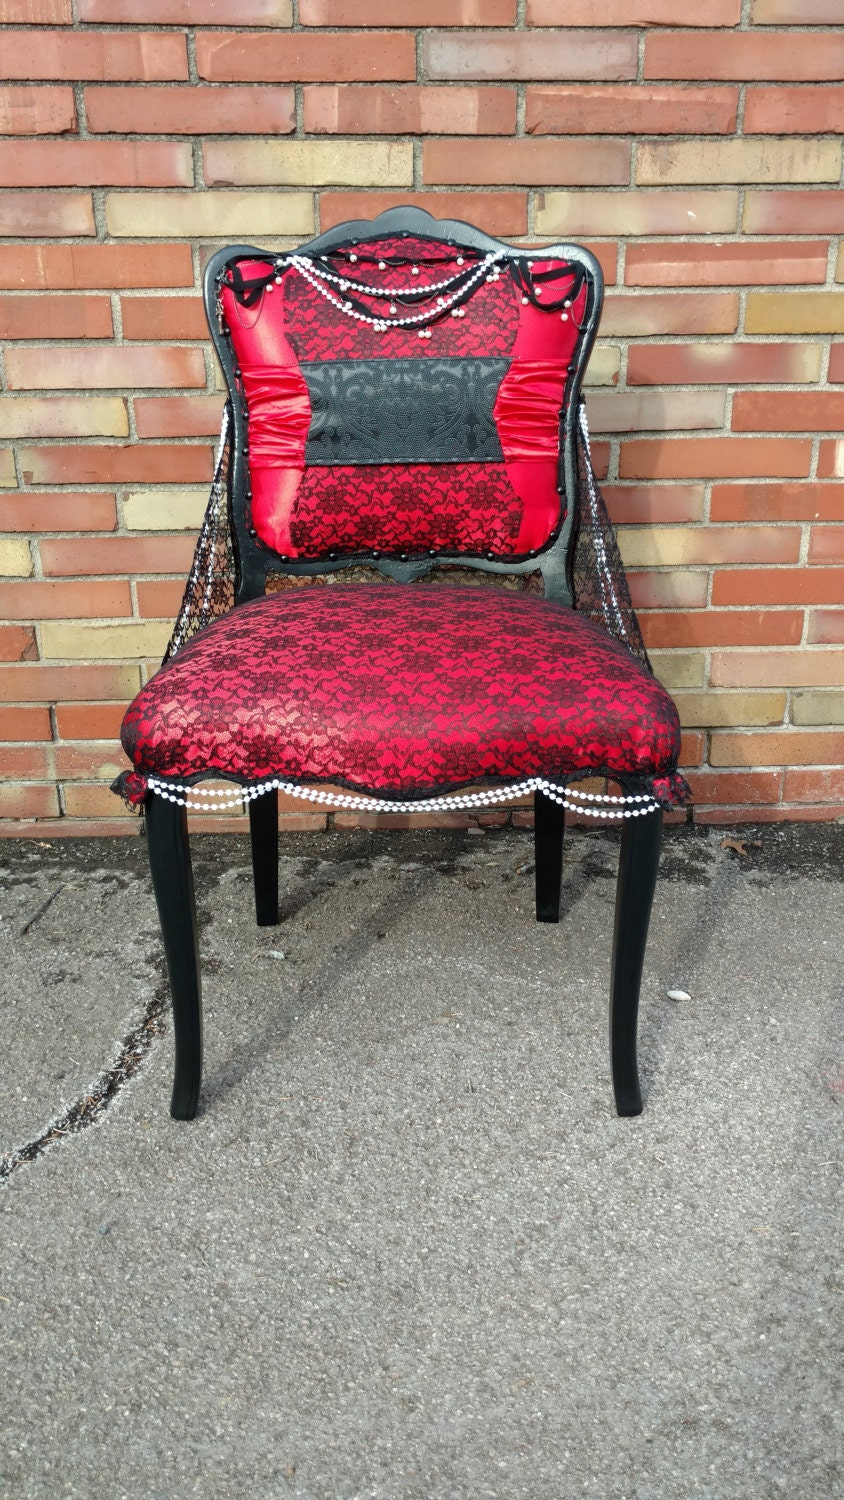 Ordinaire Accent Chair   Burlesque   Unique Furniture   Red And Black   Black Lace  Chair   Red Satin   Pearl And Lace Accent Chair